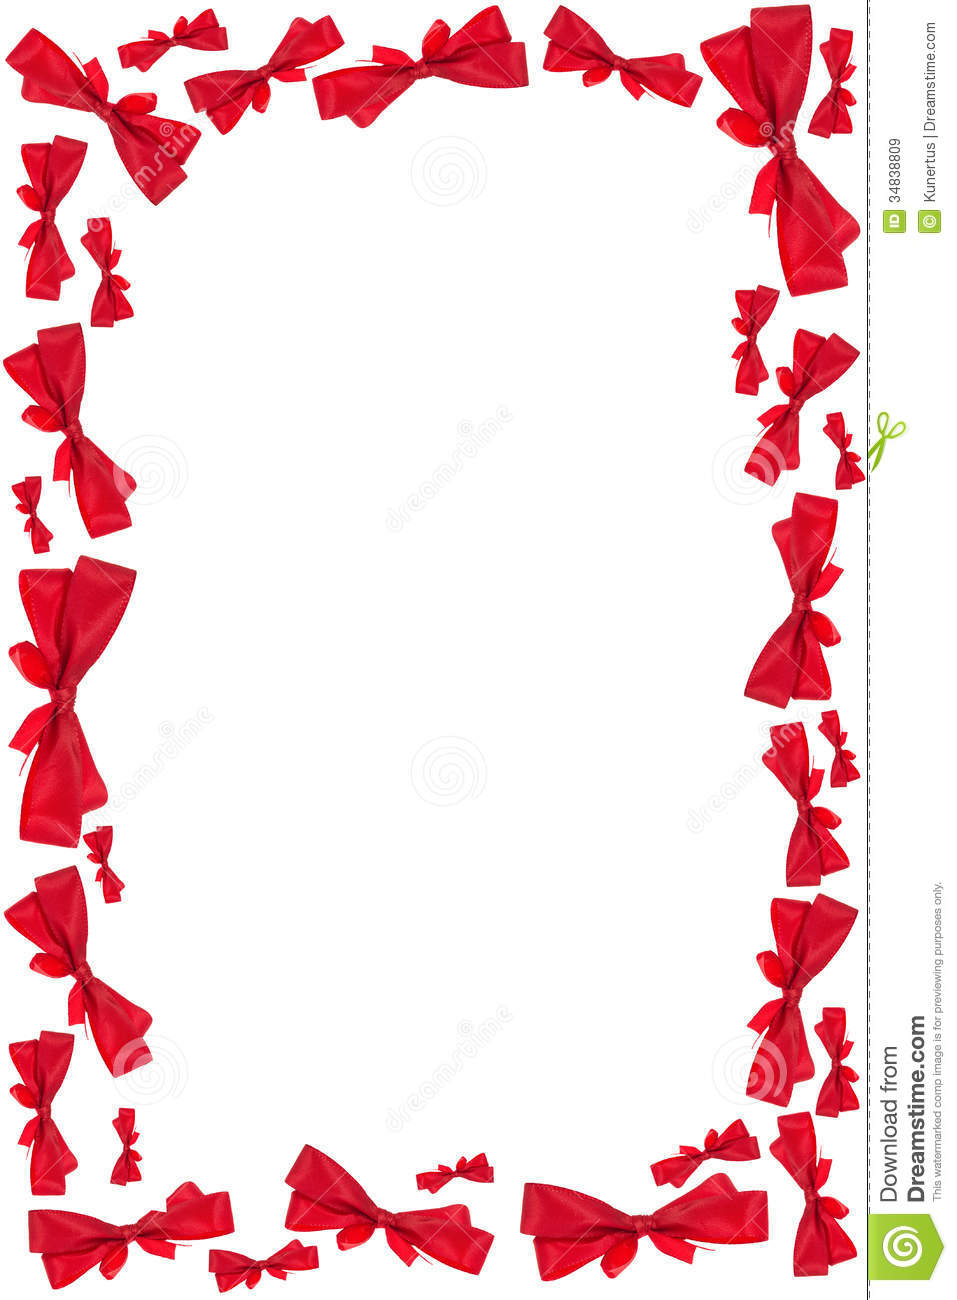 red ribbon bow frame stock image  image of banner